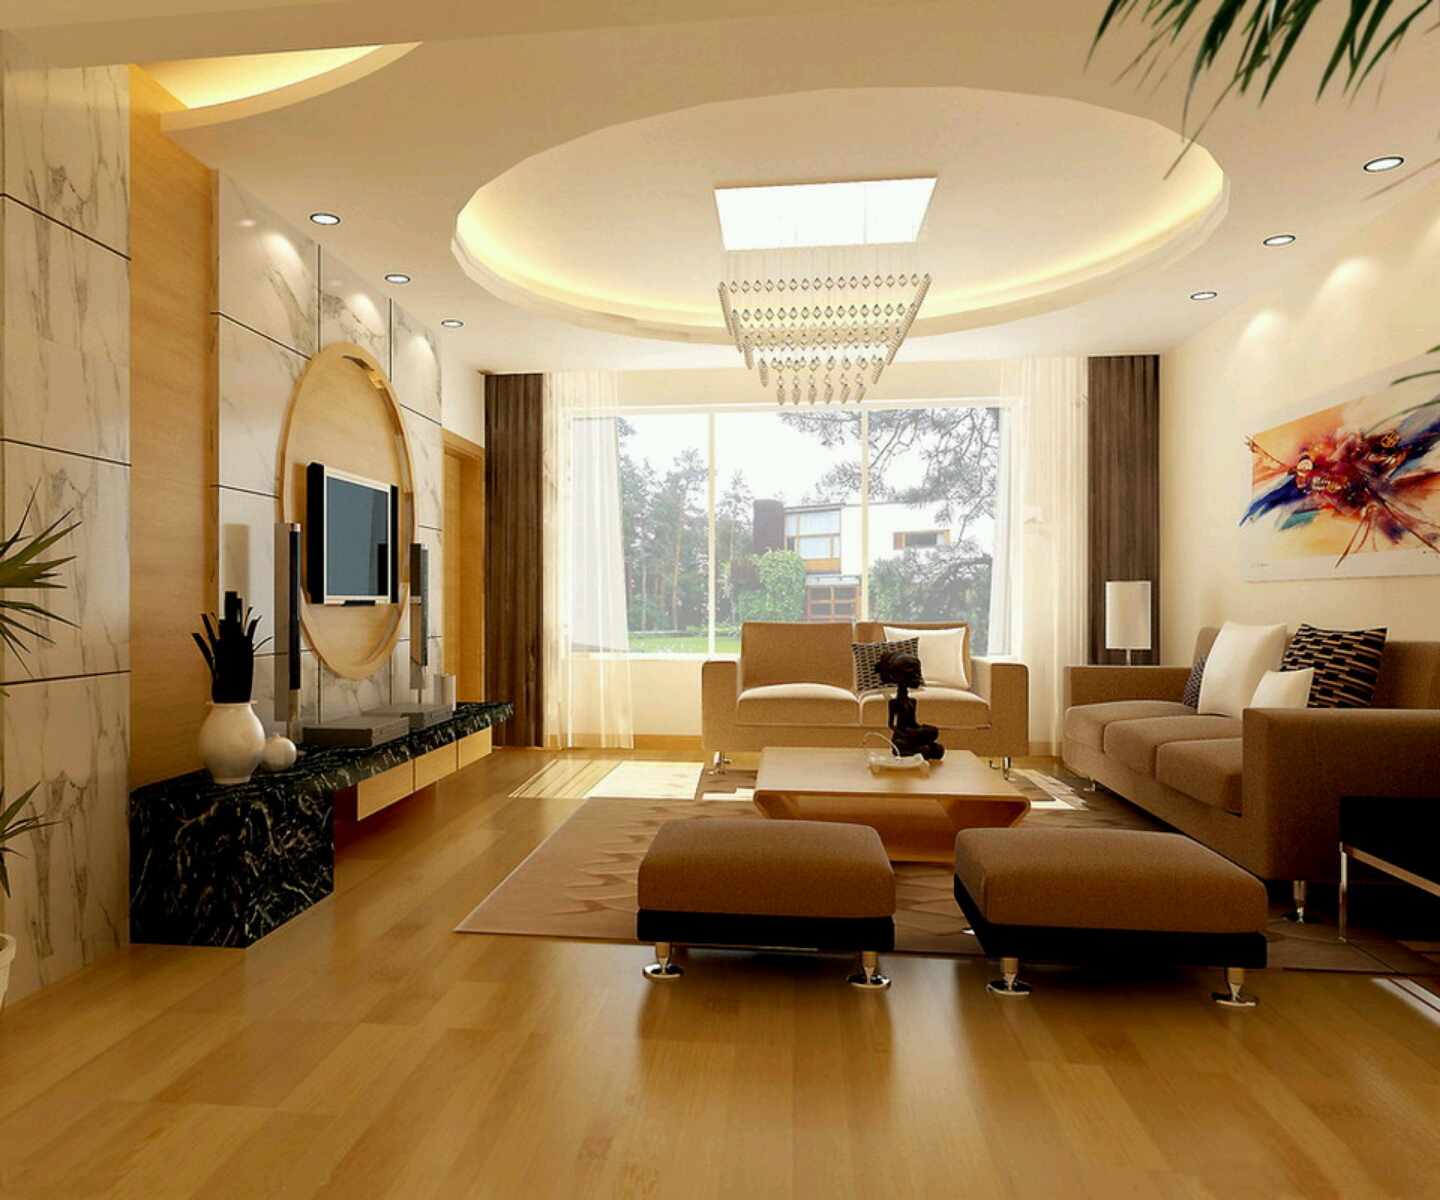 Modern interior decoration living rooms ceiling designs for Sitting room decor